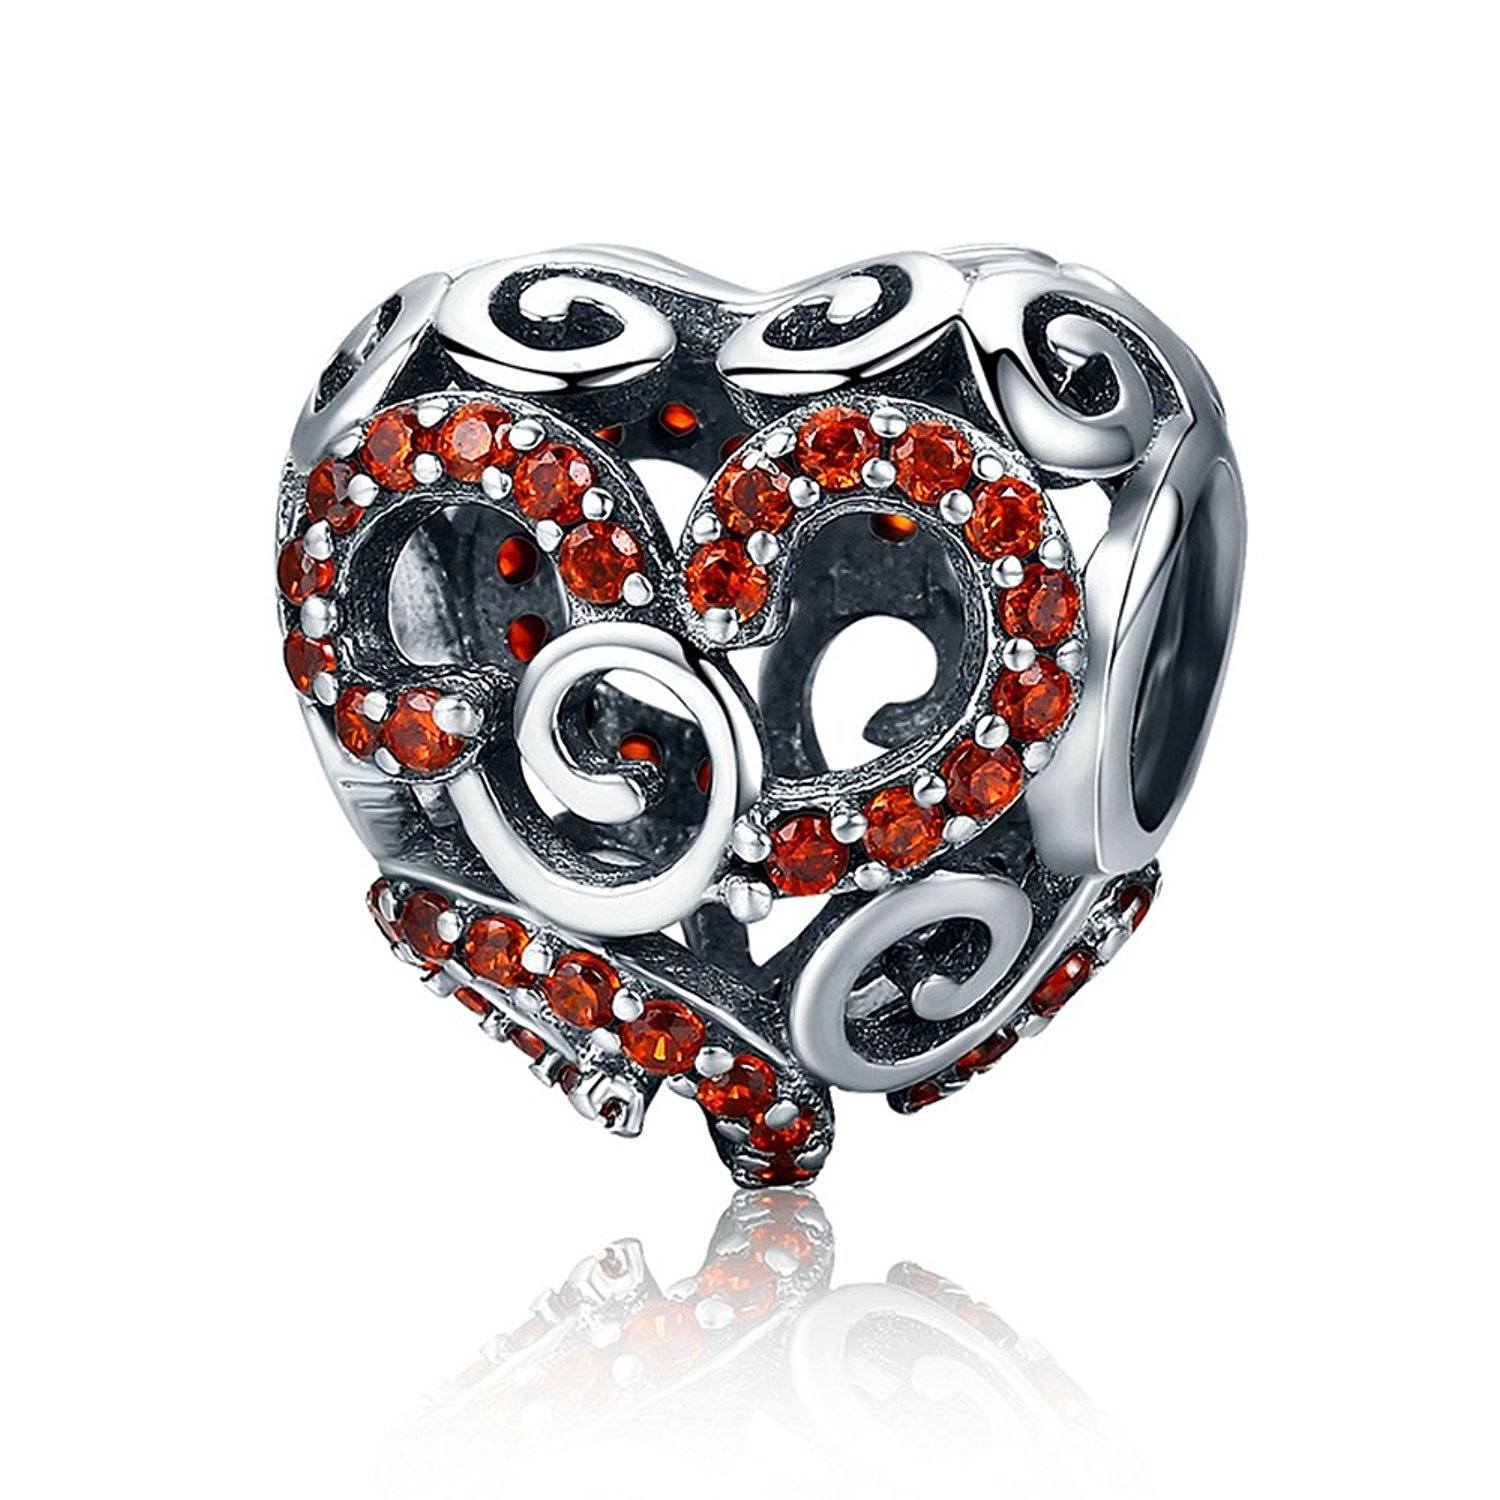 Everbling Autumn Red Maple Heart Shape Bead 925 Sterling Silver Bead For European Charm Bracelet